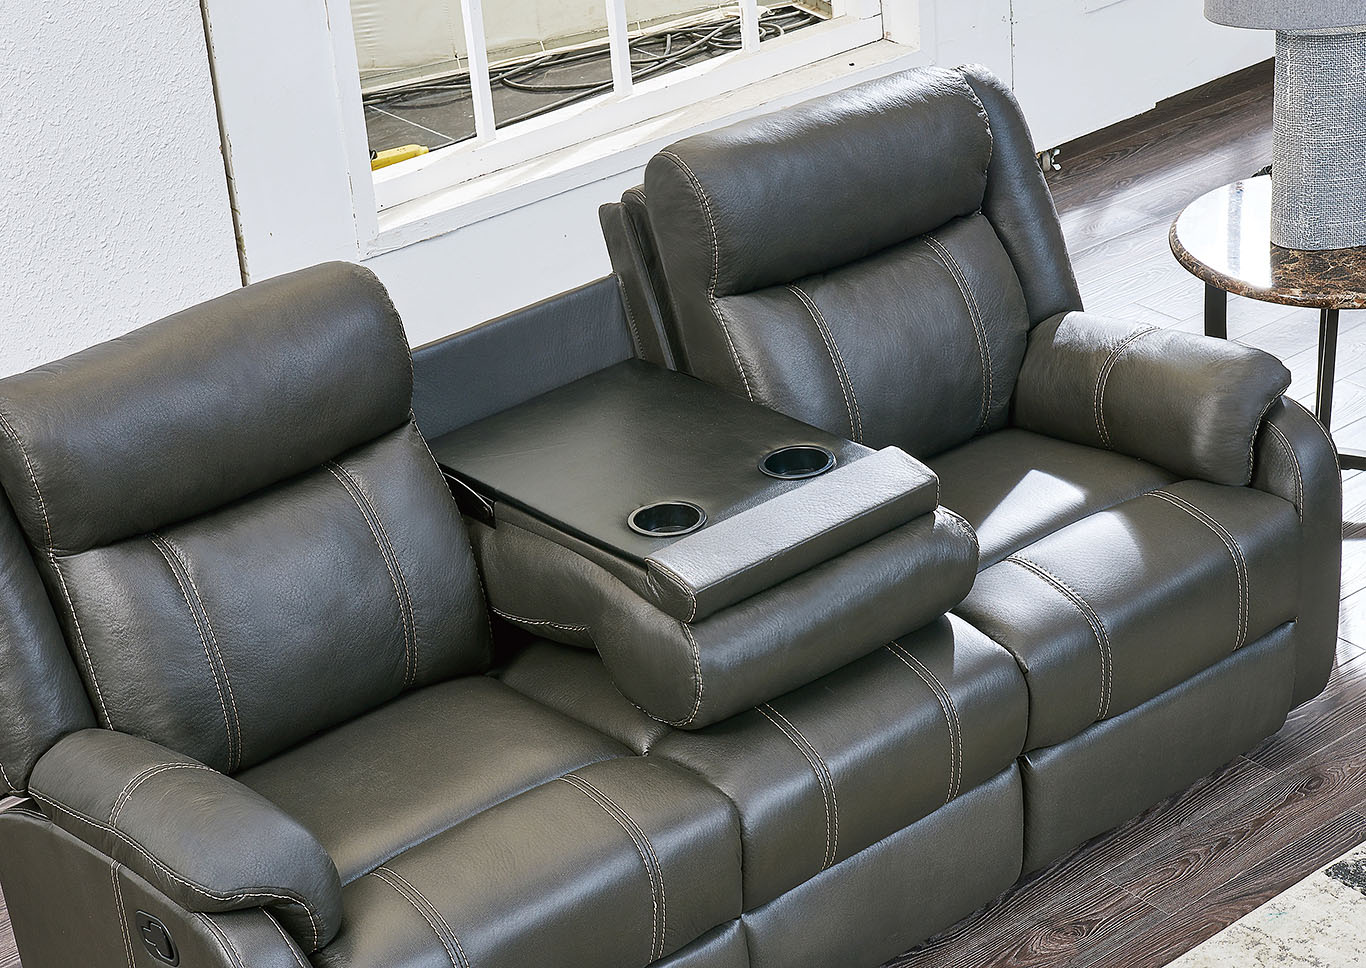 Gin Rummy Charcoal Reclining Sofa w/Drop-Down Table,Global Furniture USA